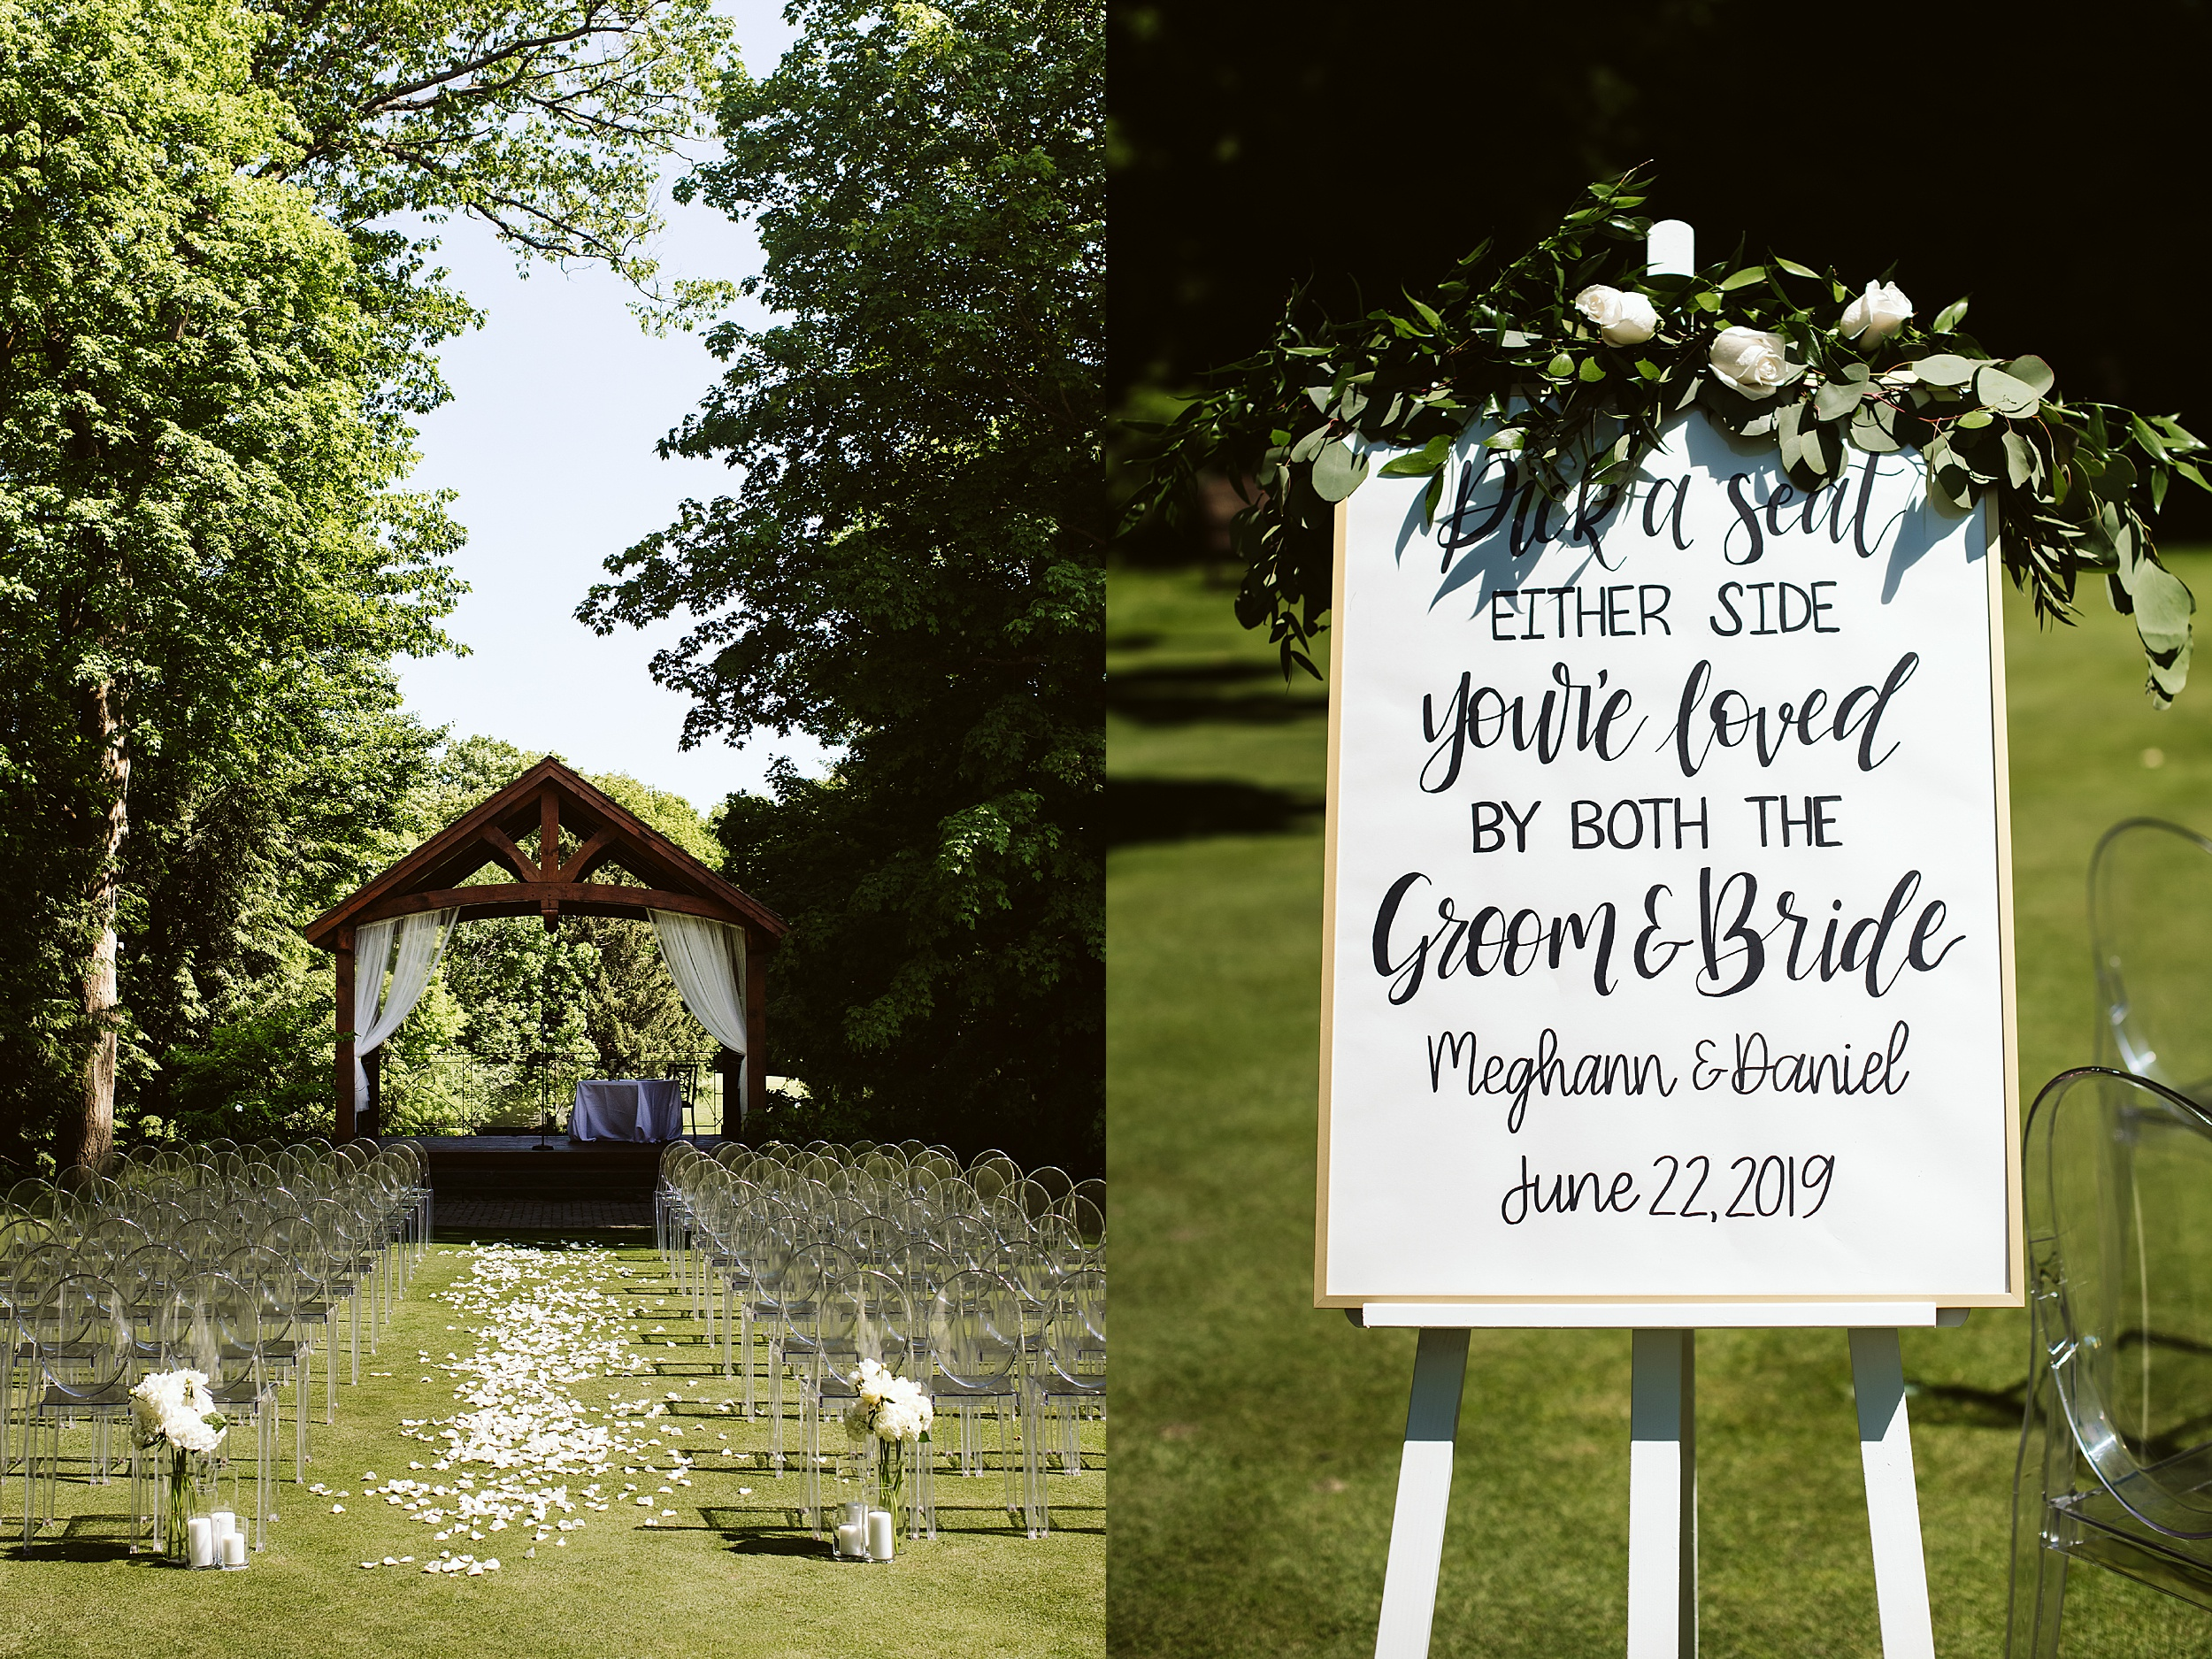 Toronto-Wedding-Photographers-Pheasant-run-golf-club-newmarket_0015.jpg